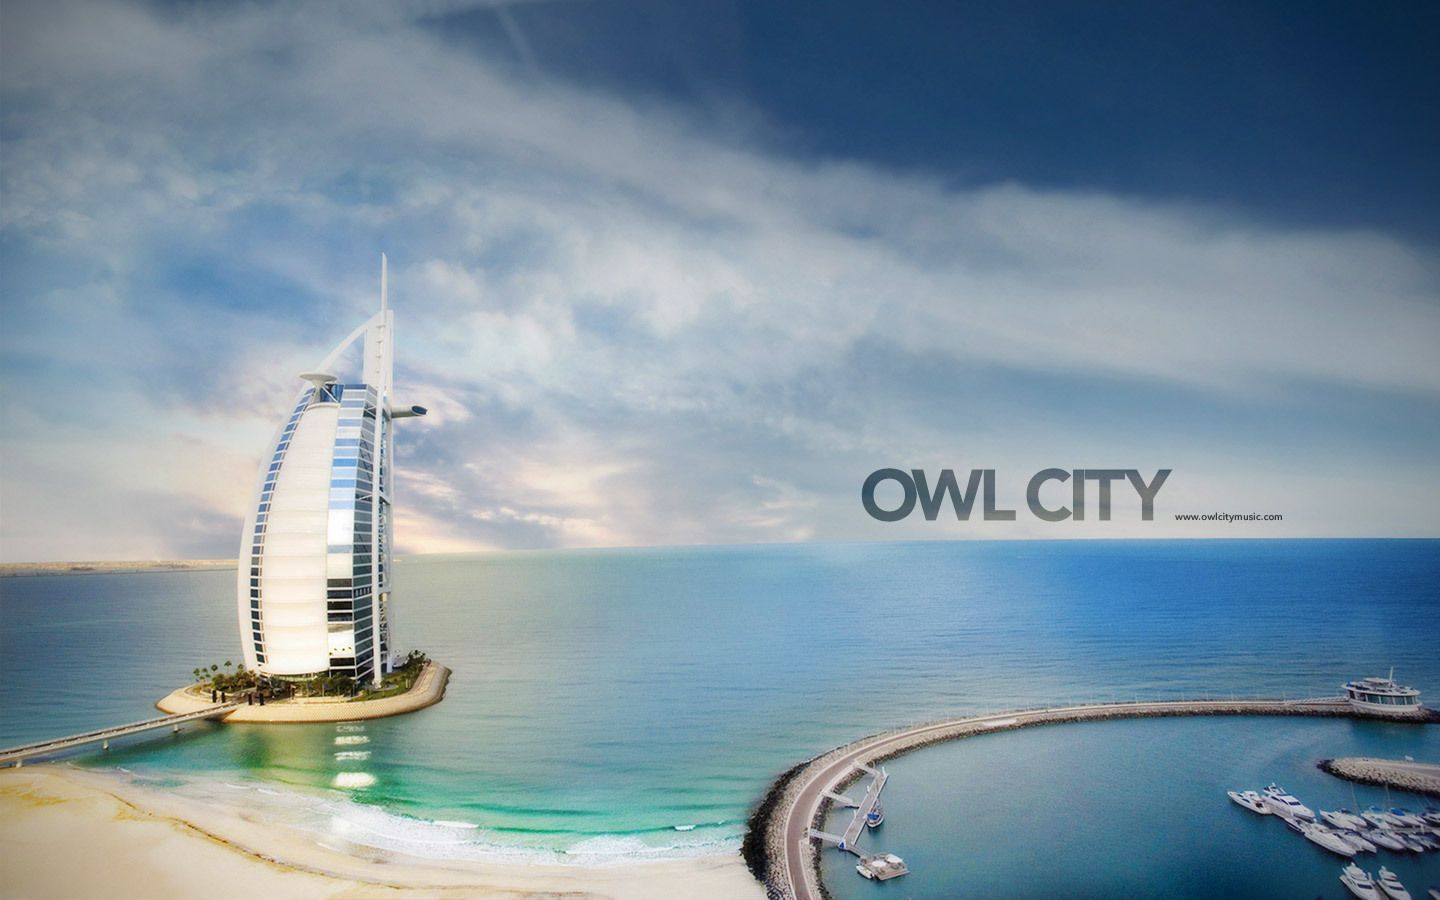 Owl City Wallpaper